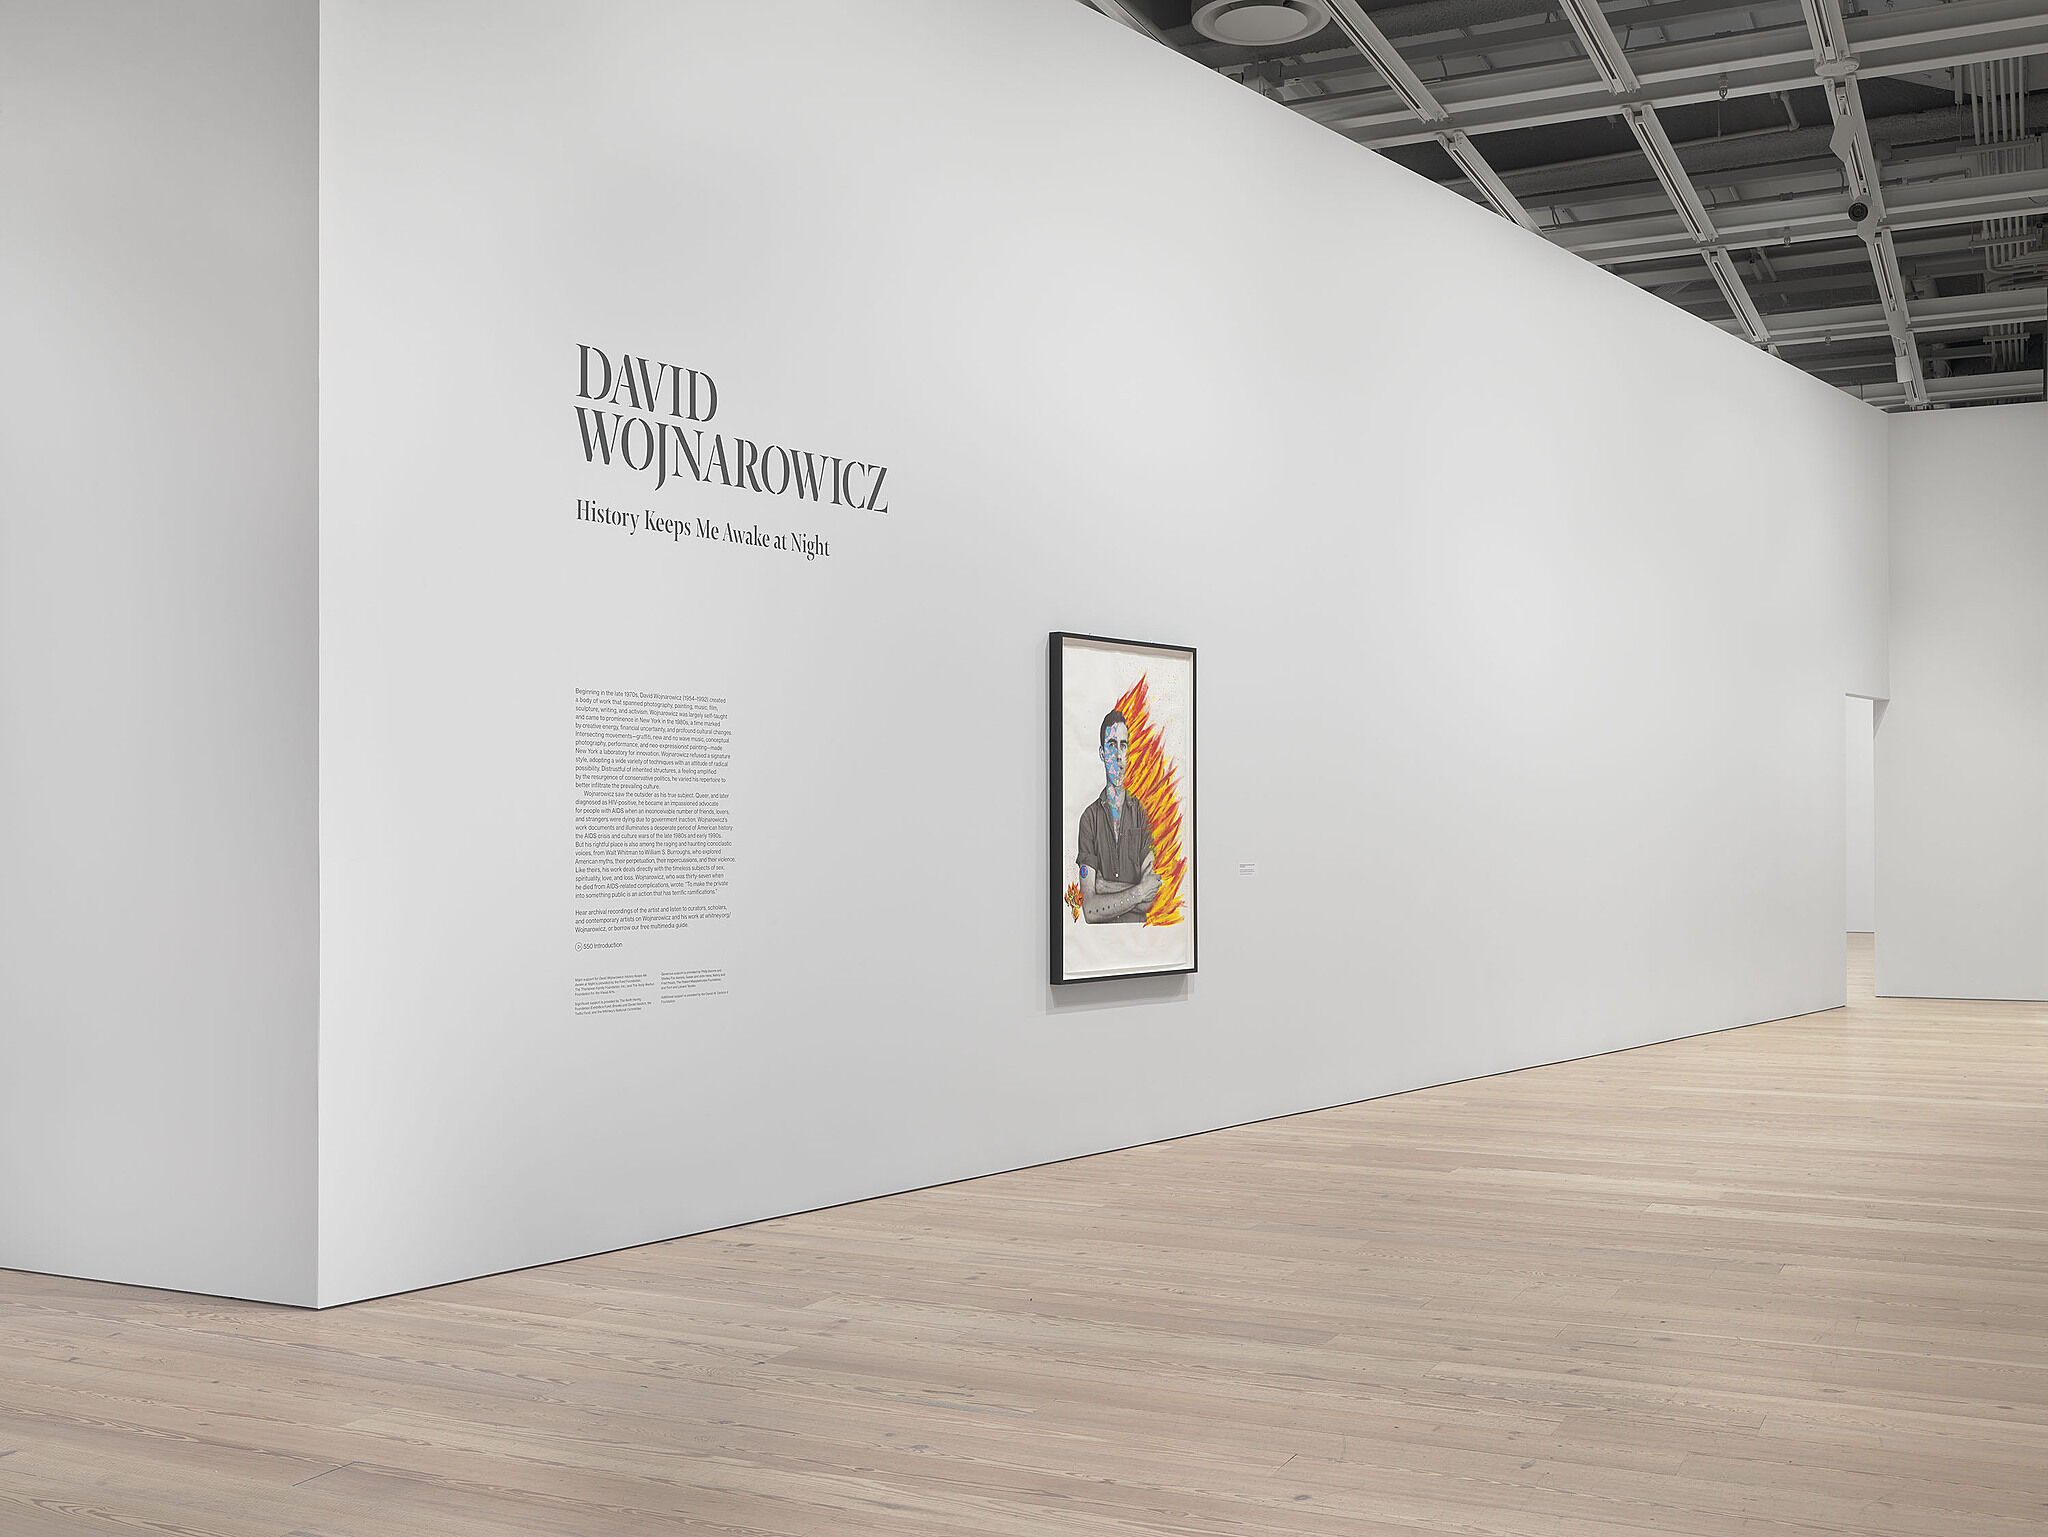 An image of the Whitney galleries with a single artwork on the wall